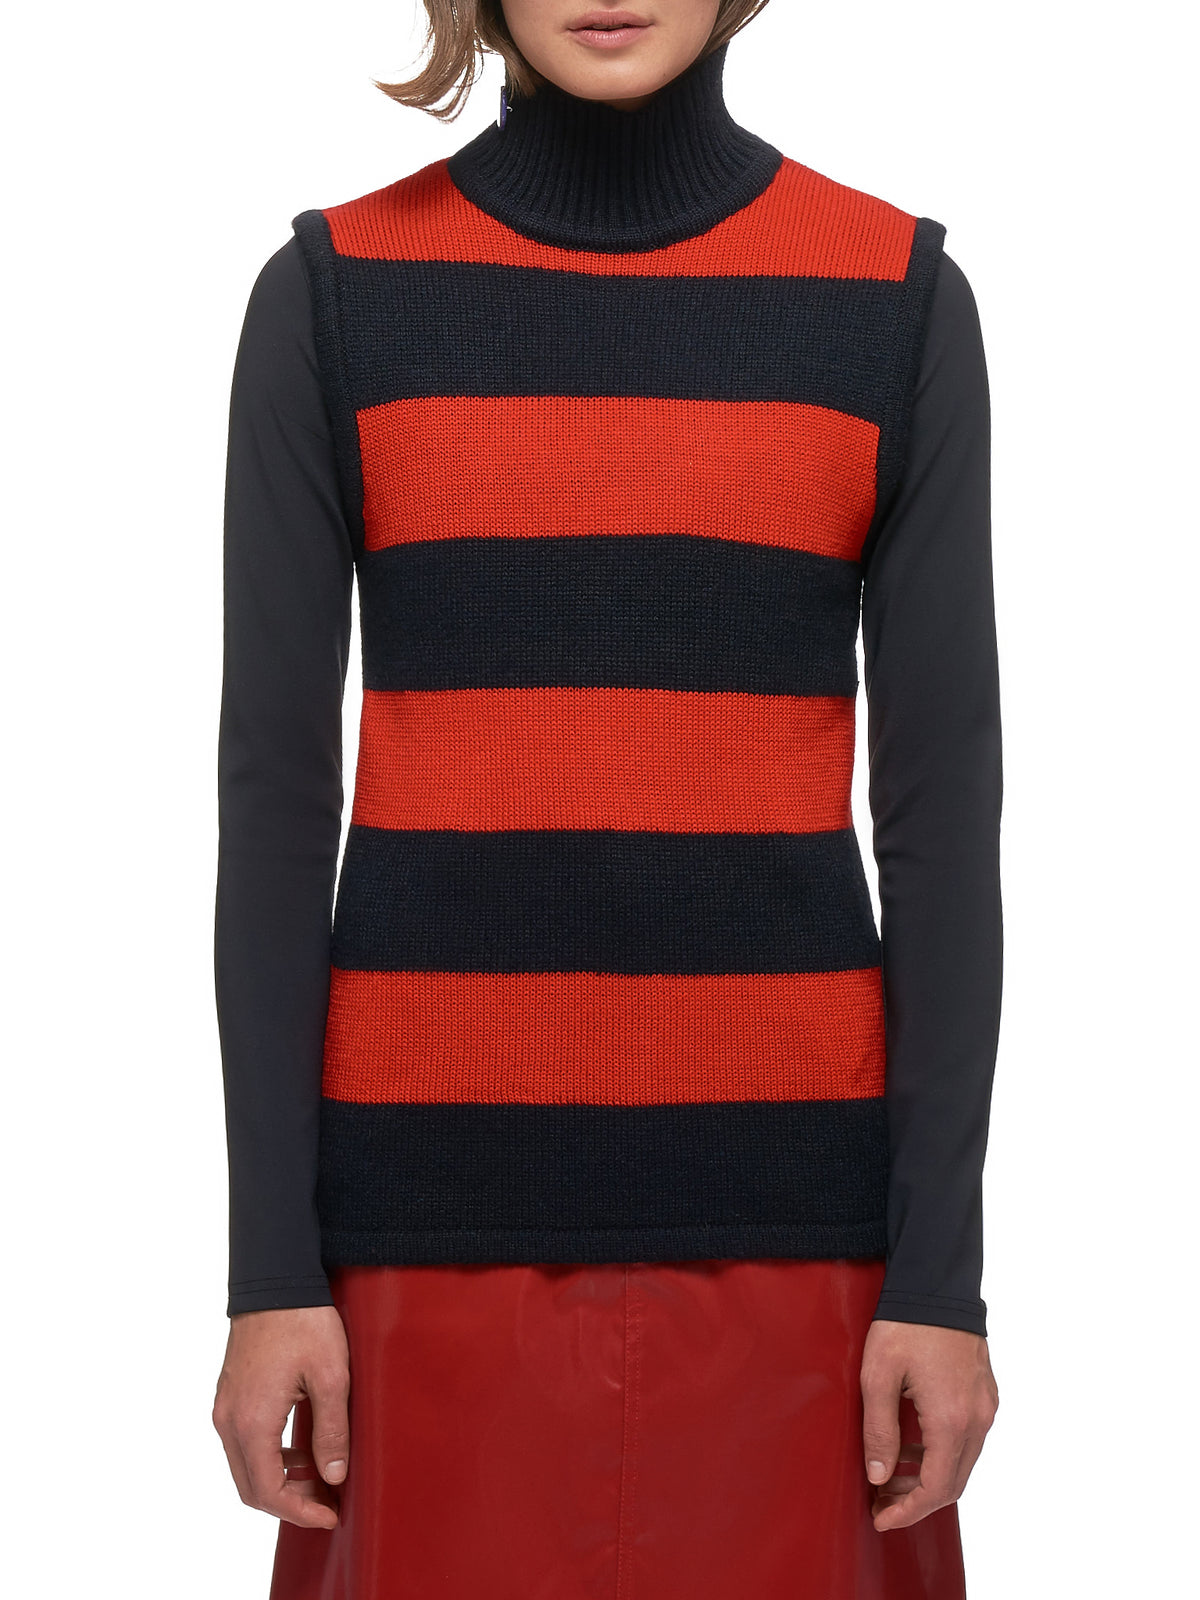 Striped Vest (20-69-W-RED-BLACK)